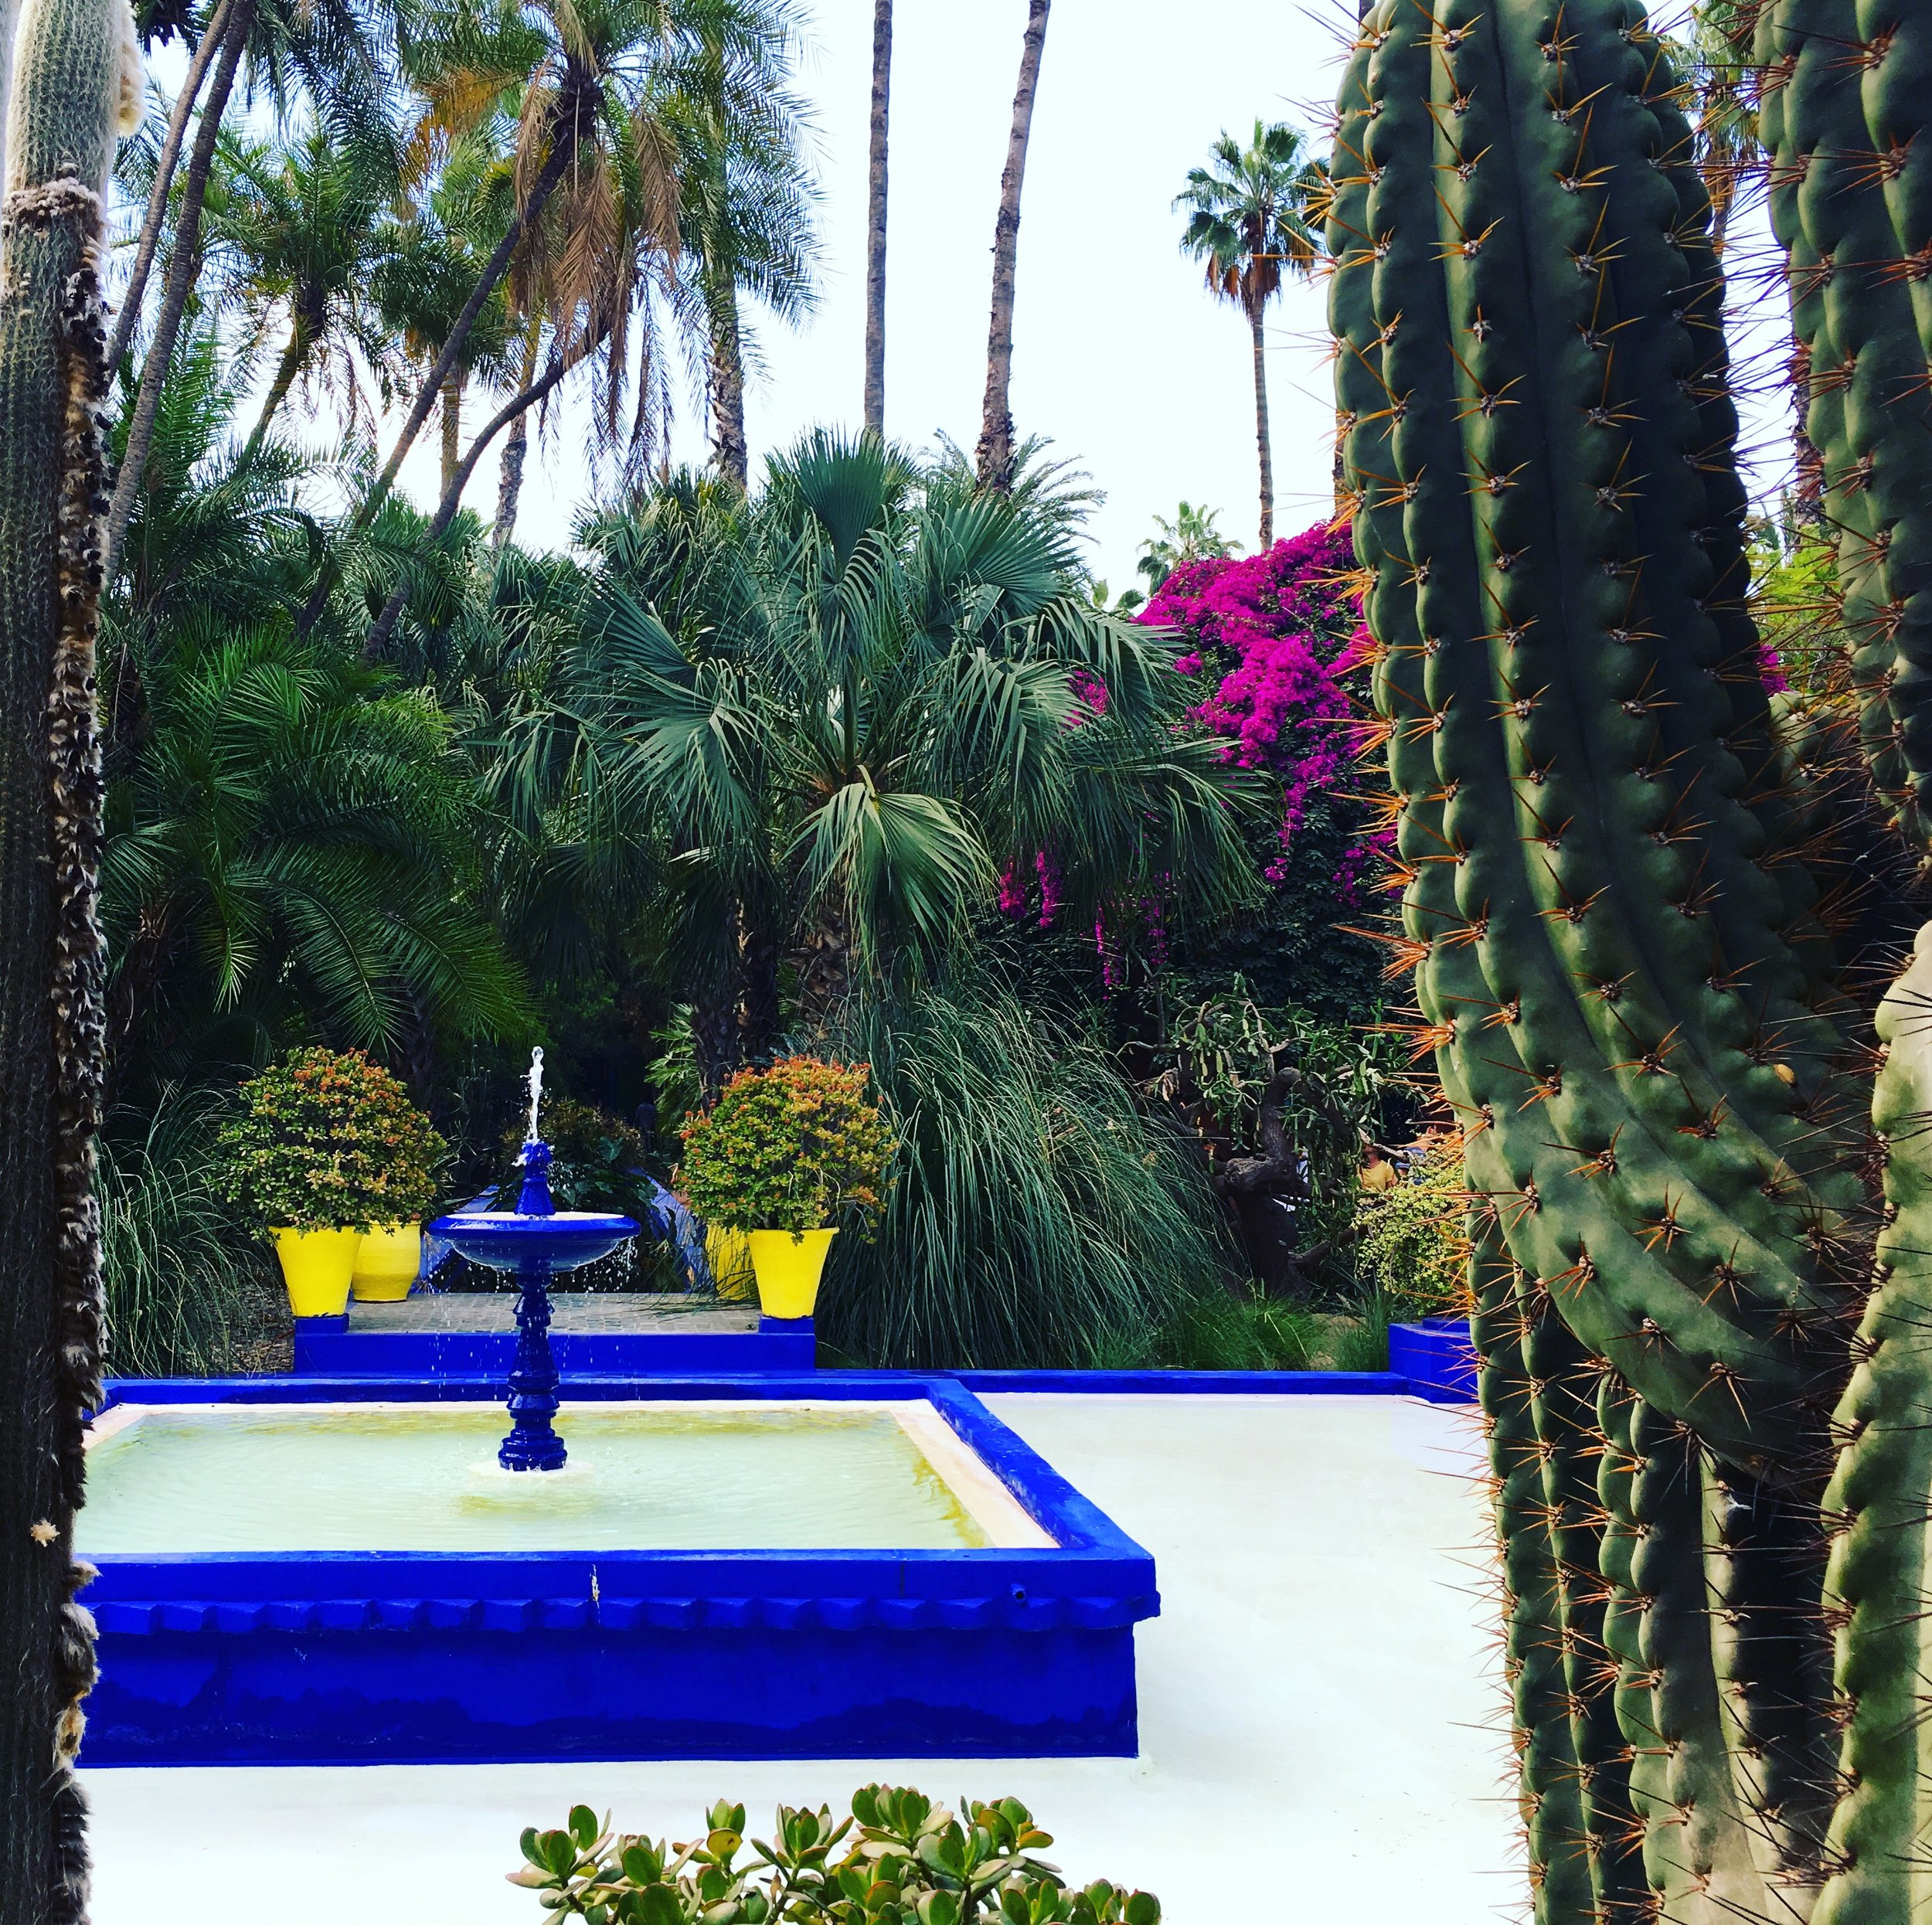 Jardin Majorelle, one of my favorite places in Marrakech.  It's beautiful, and worth at least 45 mins.